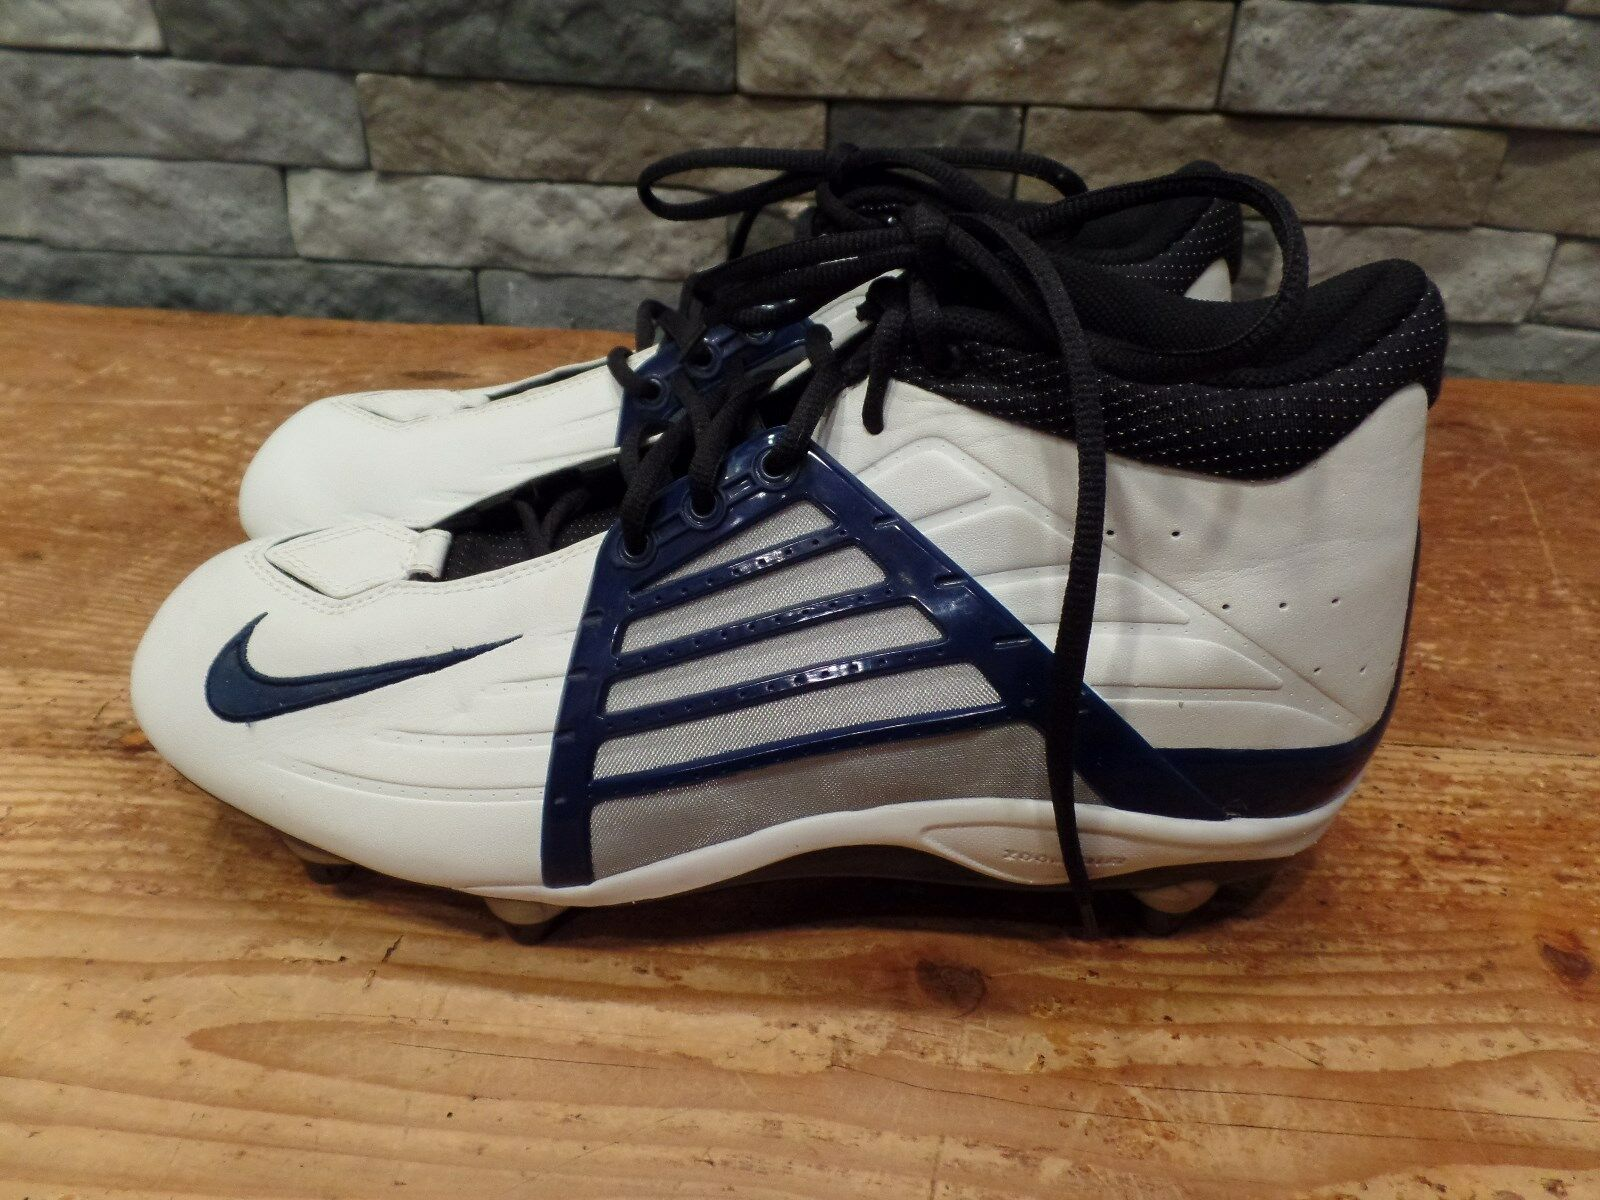 Nike Air Zoom Impact Football Cleats Alpha Project Navy Nice White Men's Size 12 Nice Navy 251733